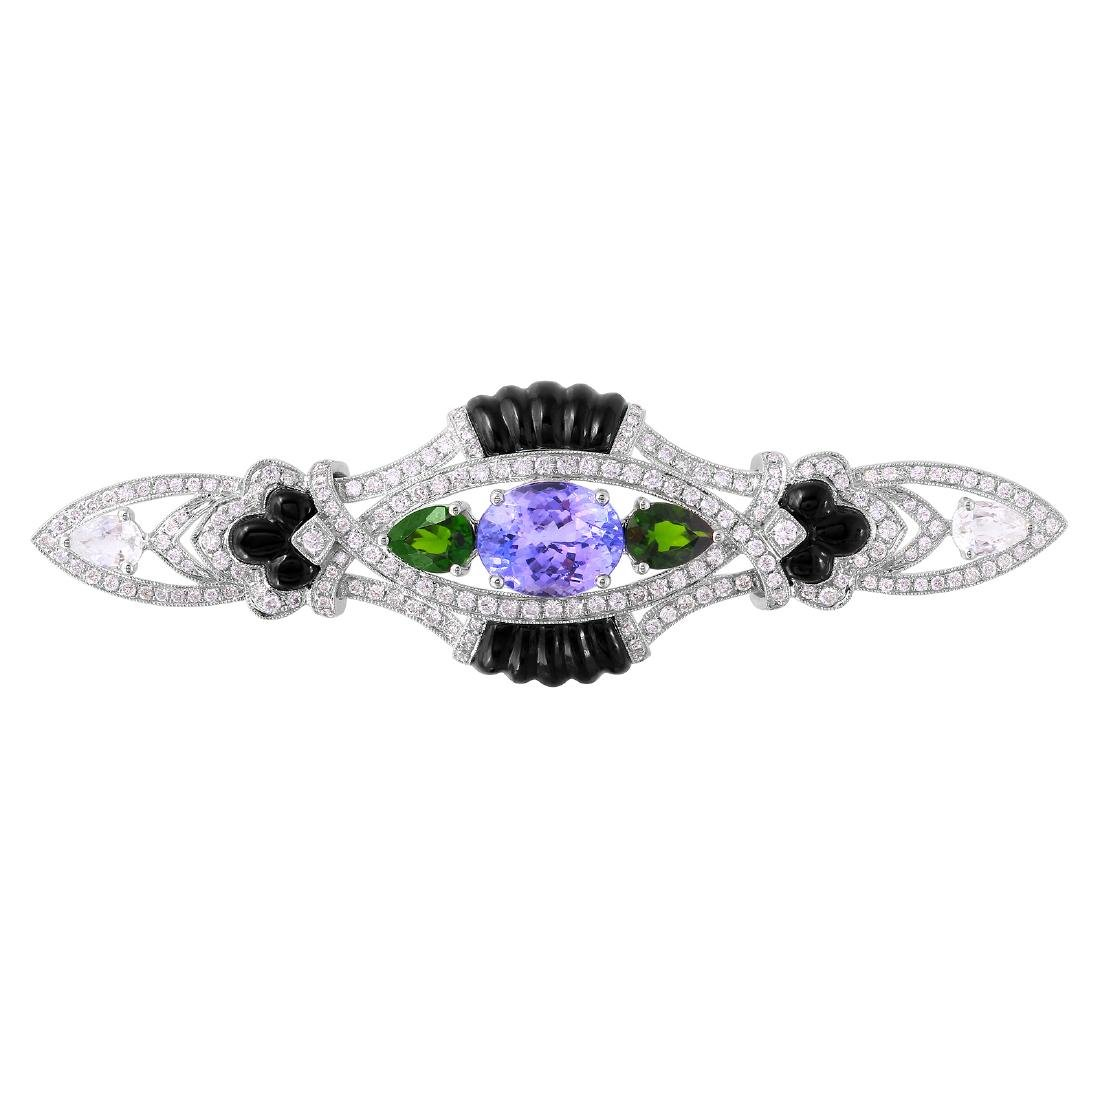 18KT White Gold Gemstone Brooch - 3